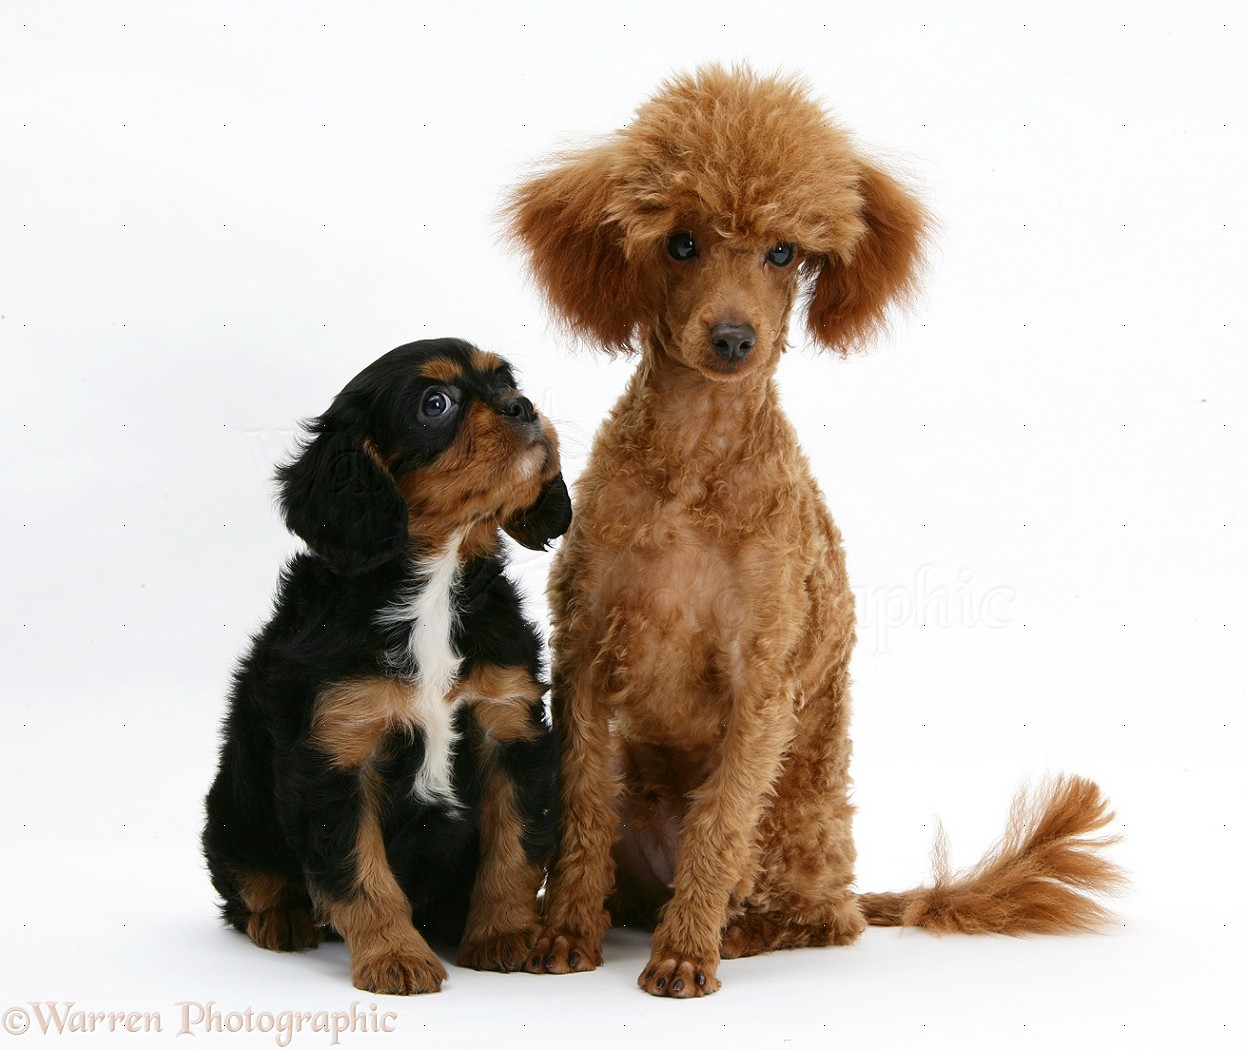 Wp23739 red toy poodle pup reggie with black and tan cavalier king